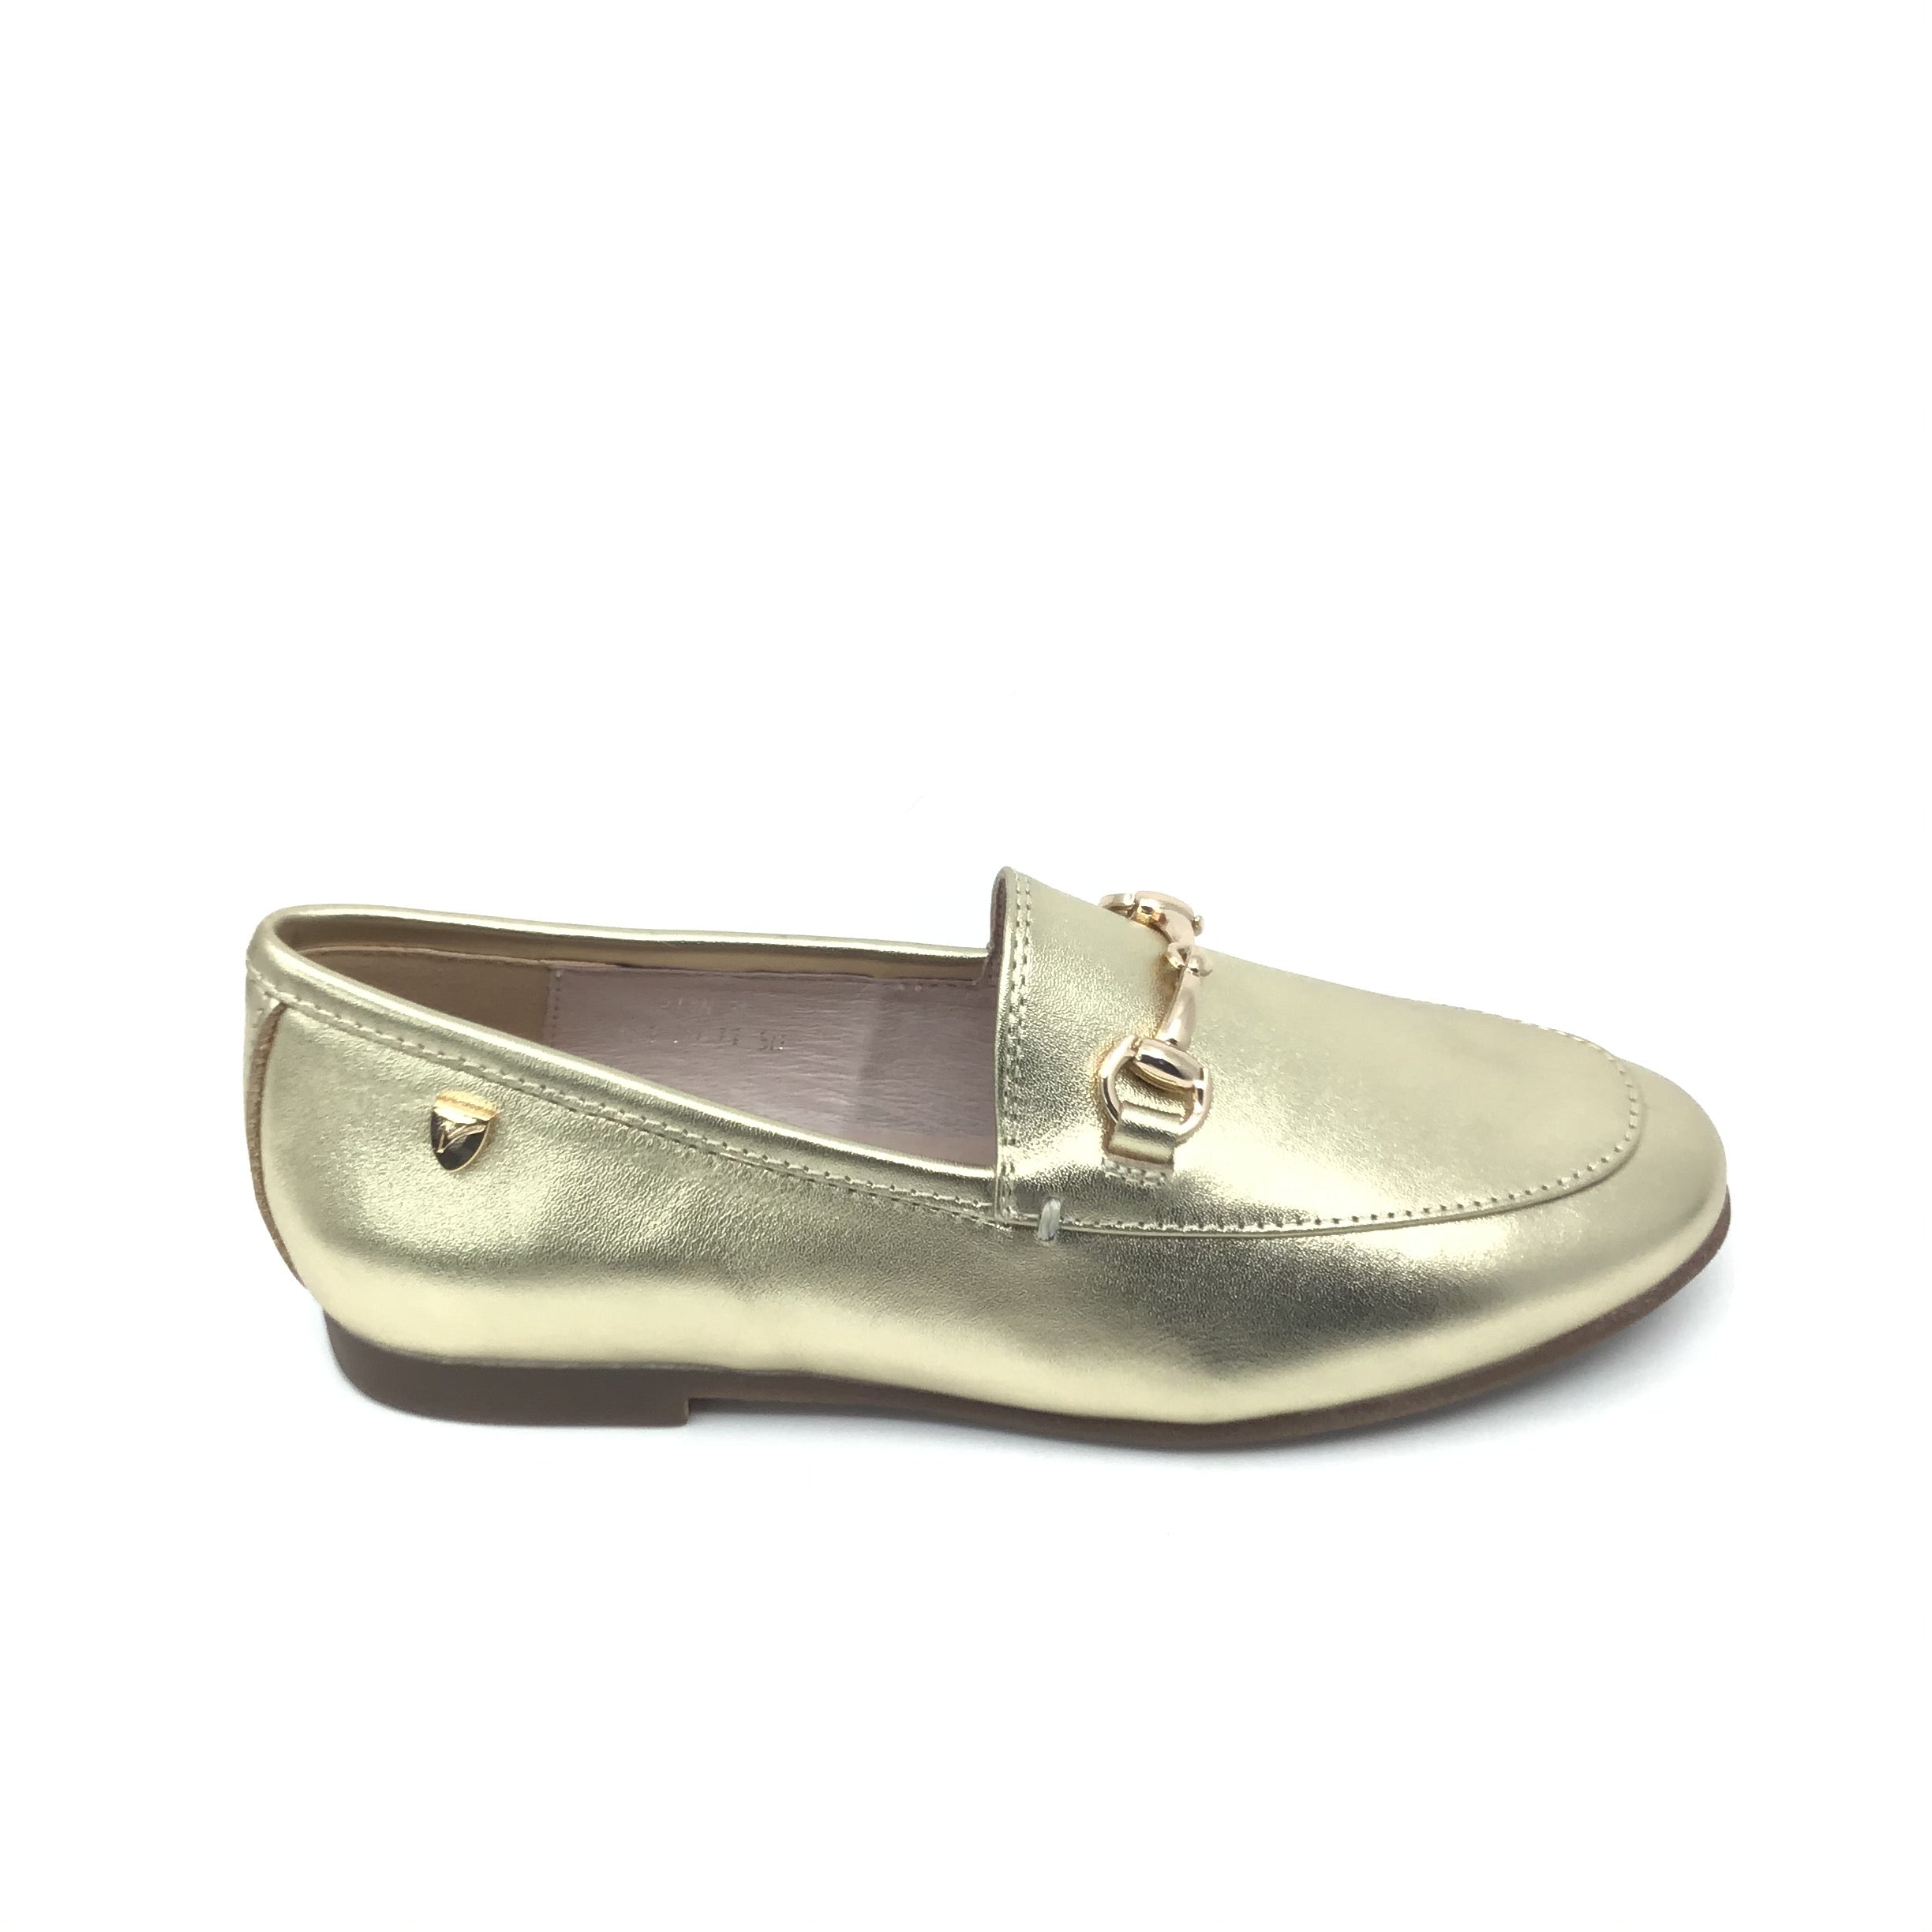 Venettini Gold Loafer with Chain